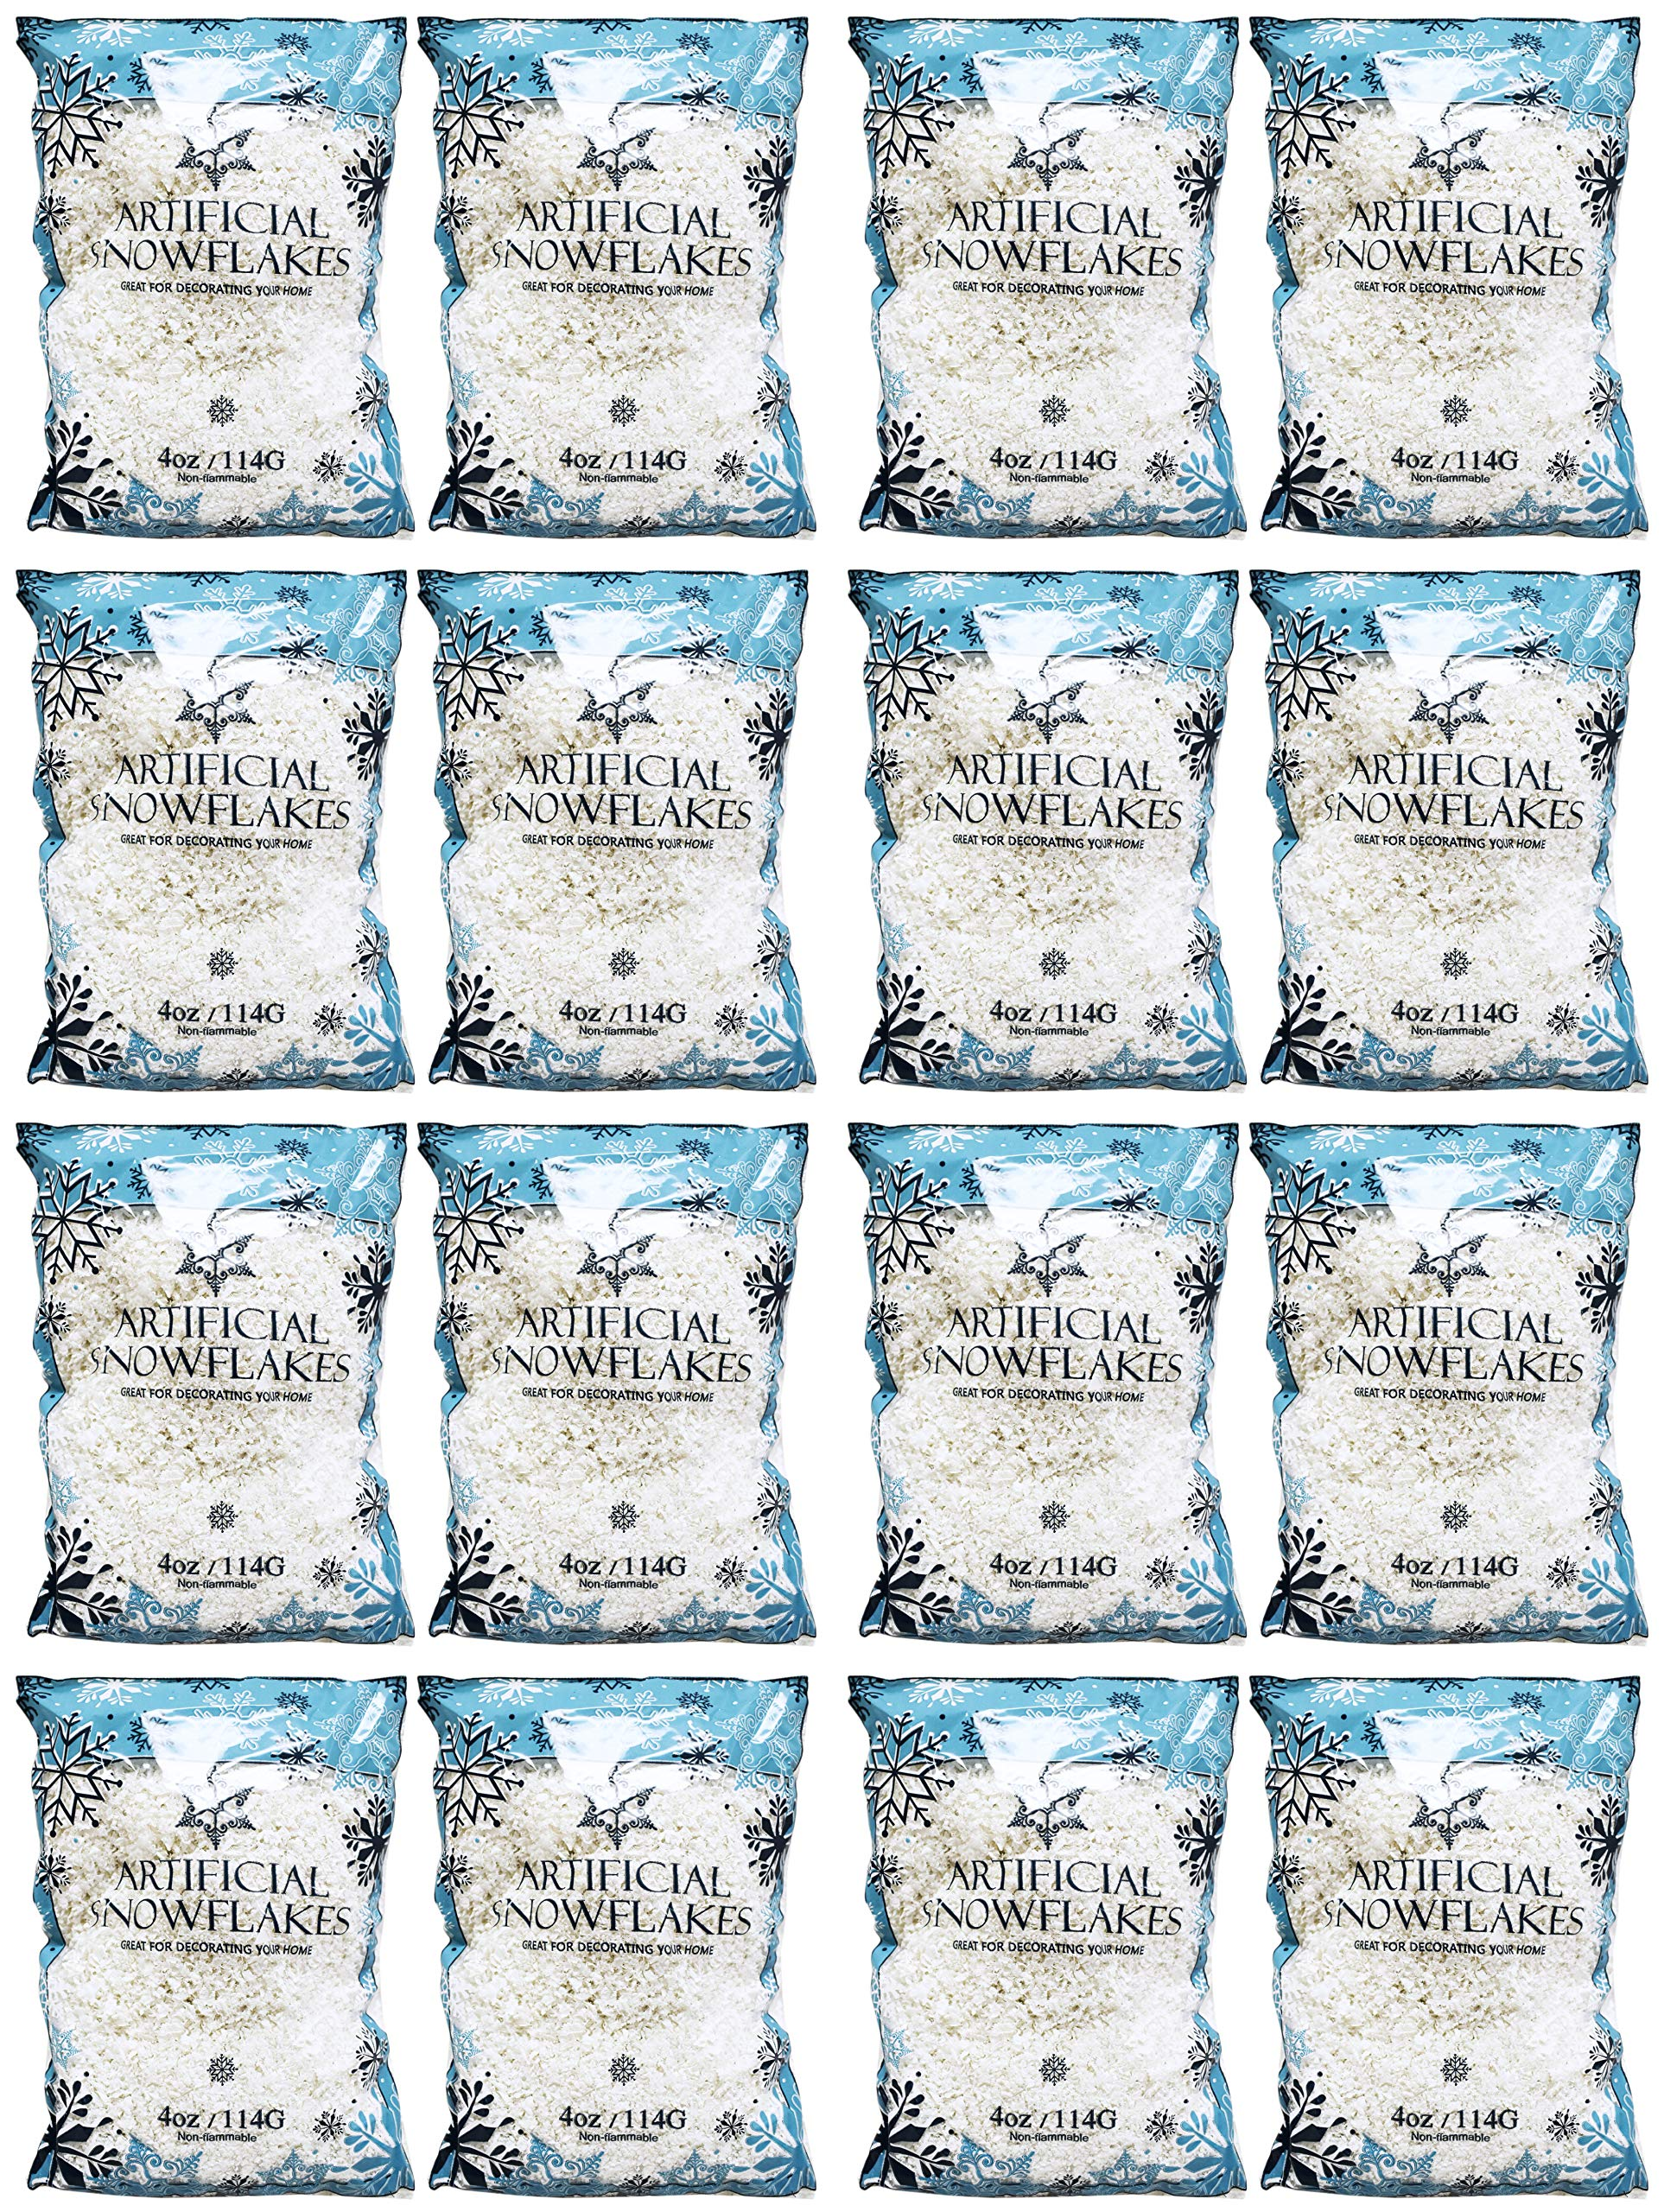 Black Duck Brand Set of 16 Snow Artificial Flakes 4 Oz Bags! Festive Fake Snow for Crafts, Christmas, and Decor!